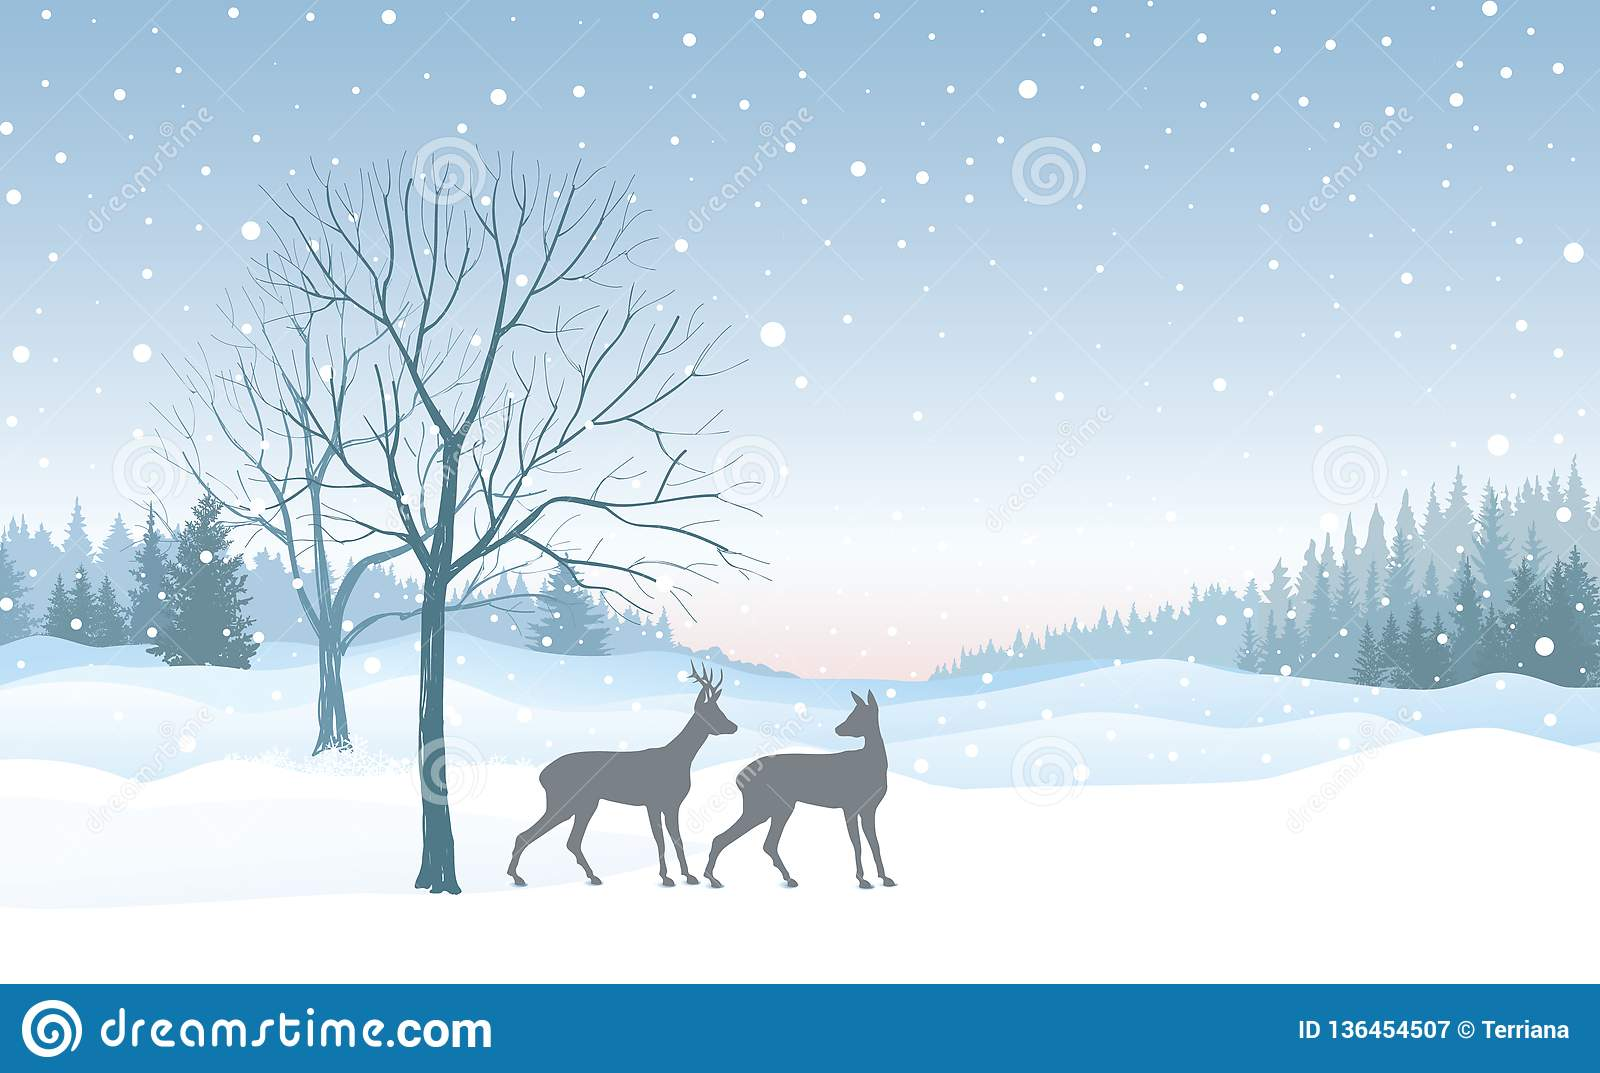 Christmas Background Snow Winter Landscape Skyline With